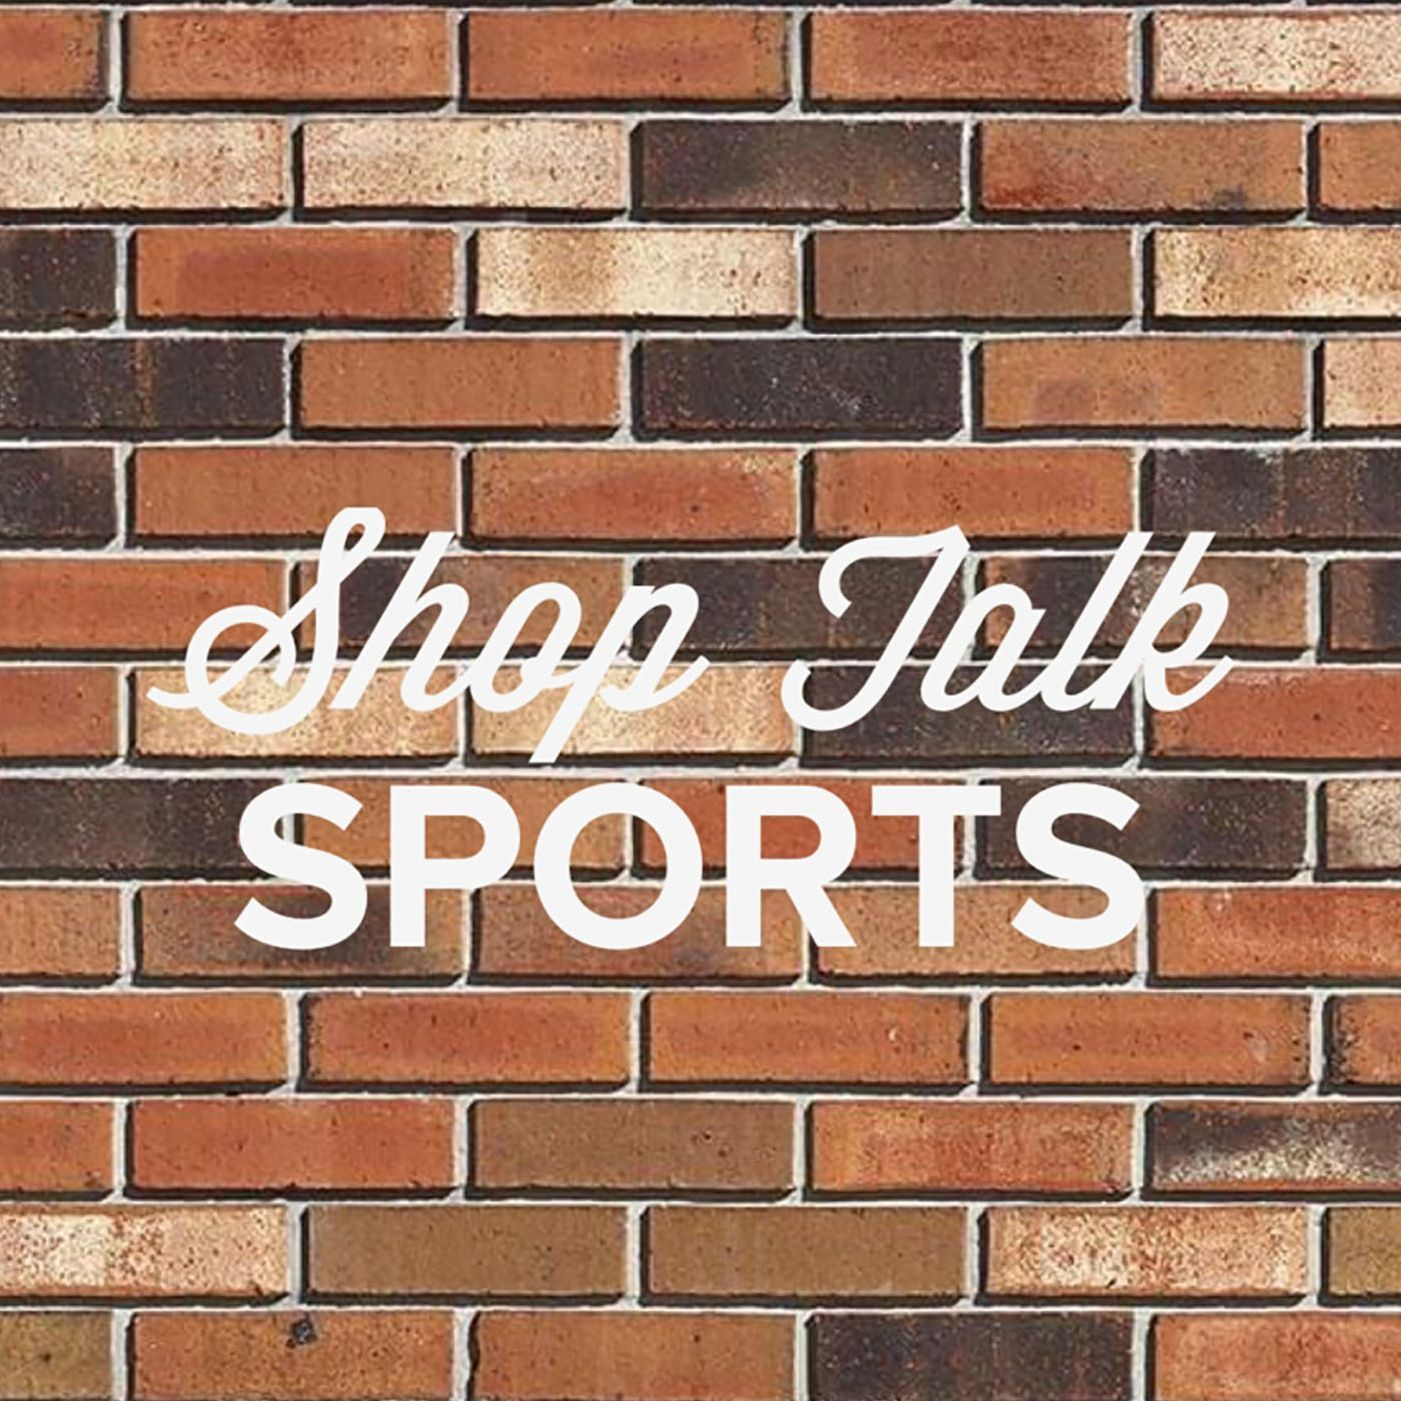 Shop Talk: Sports EP2 - Big Names, Bad Fantasy?